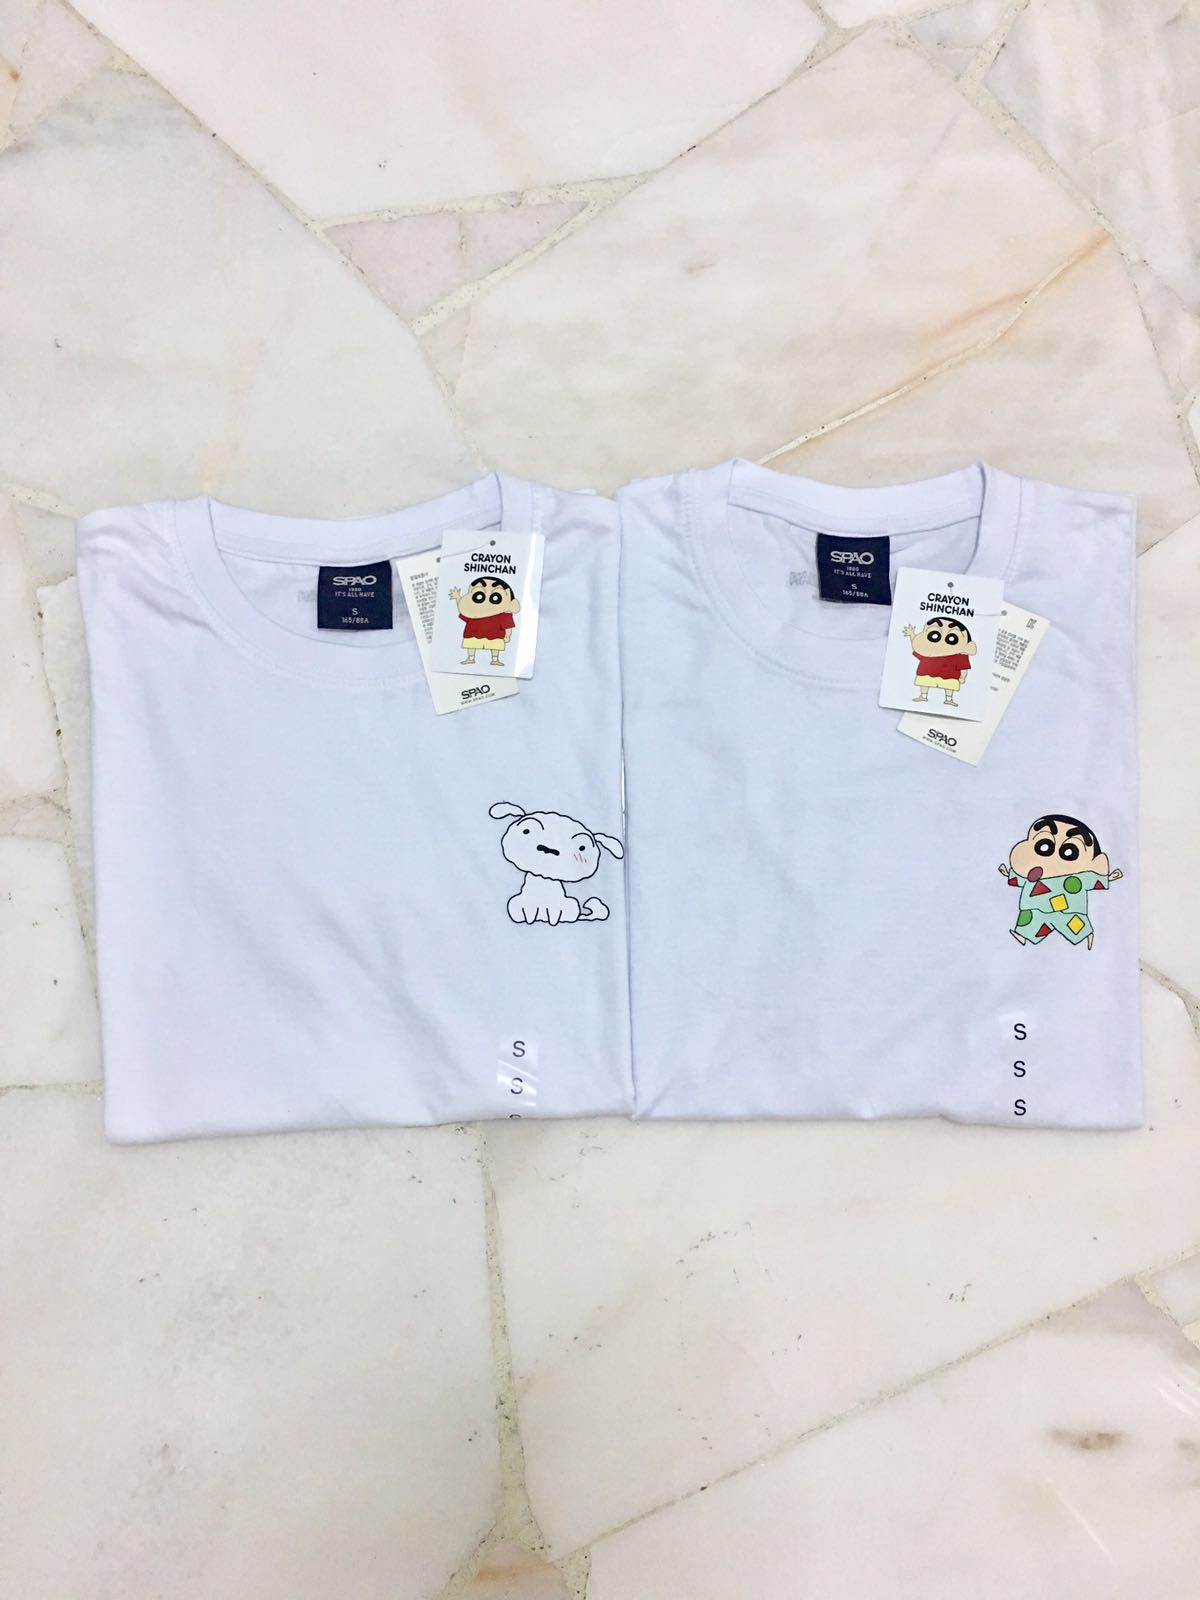 d1e165da2bec BNWT S Size Authentic La Bi Xiao Xin Tee from SPAO, Men's Fashion, Clothes,  Tops on Carousell